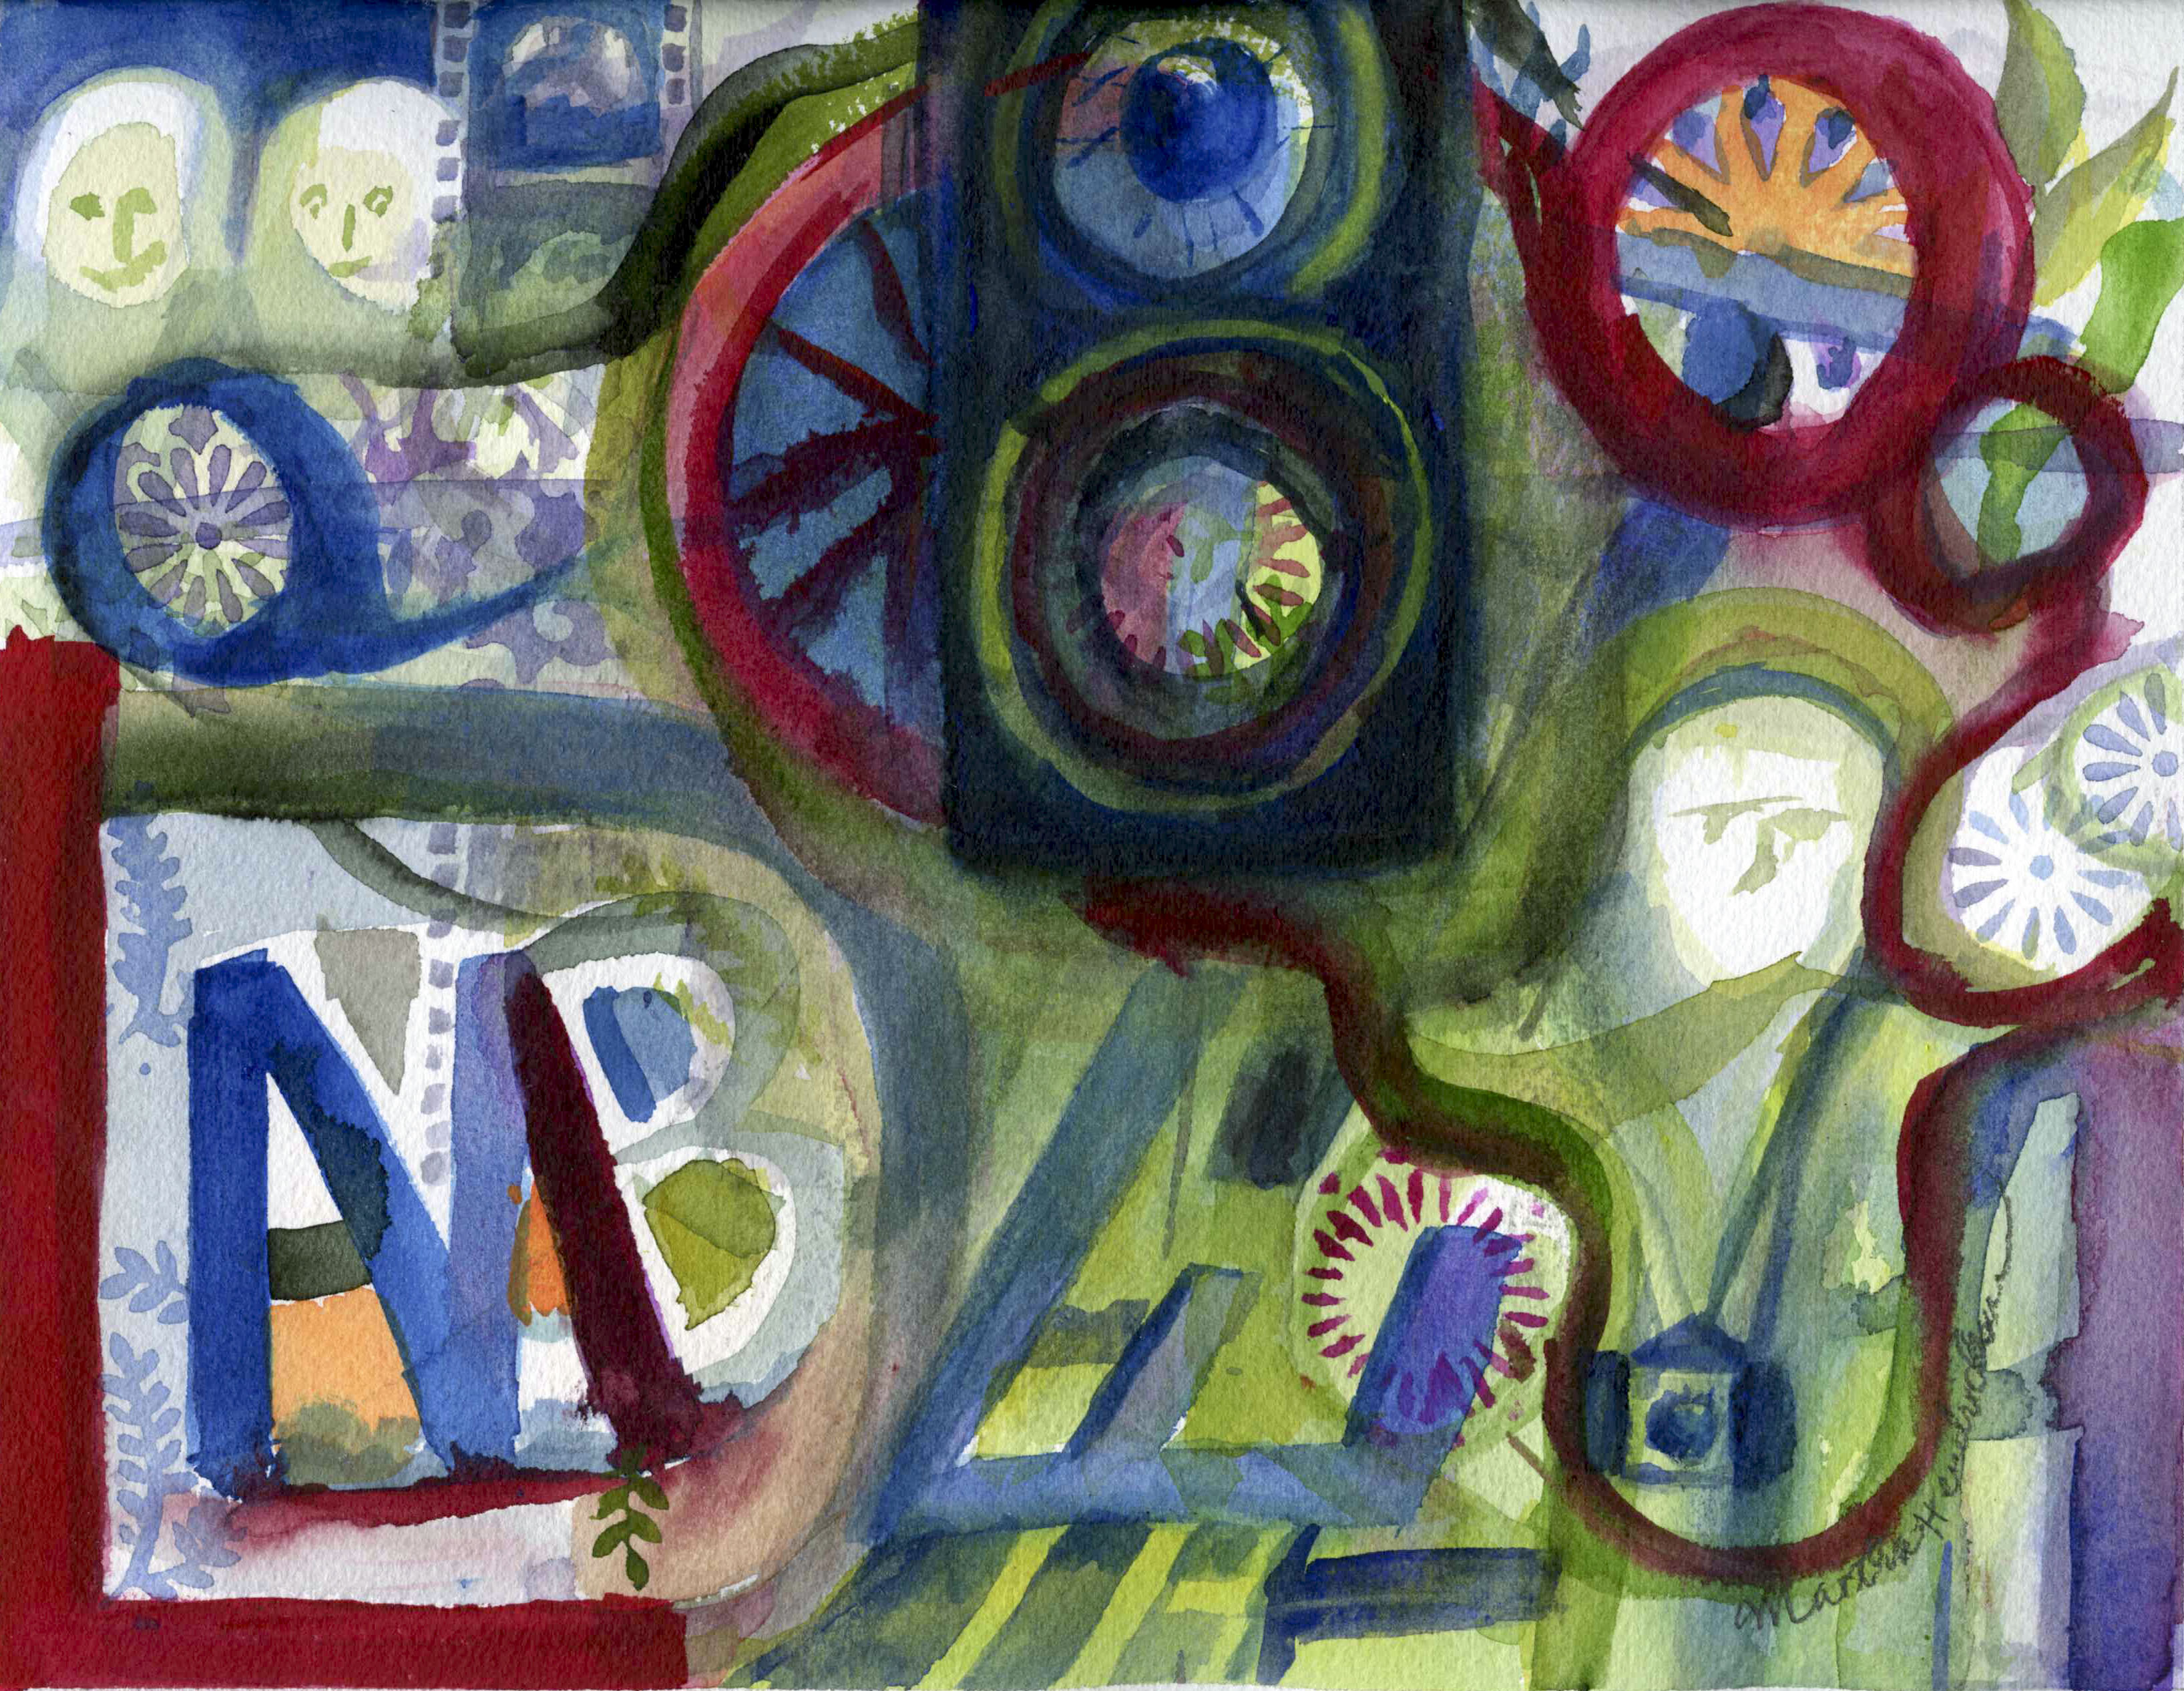 Abstract watercolor painting using letters